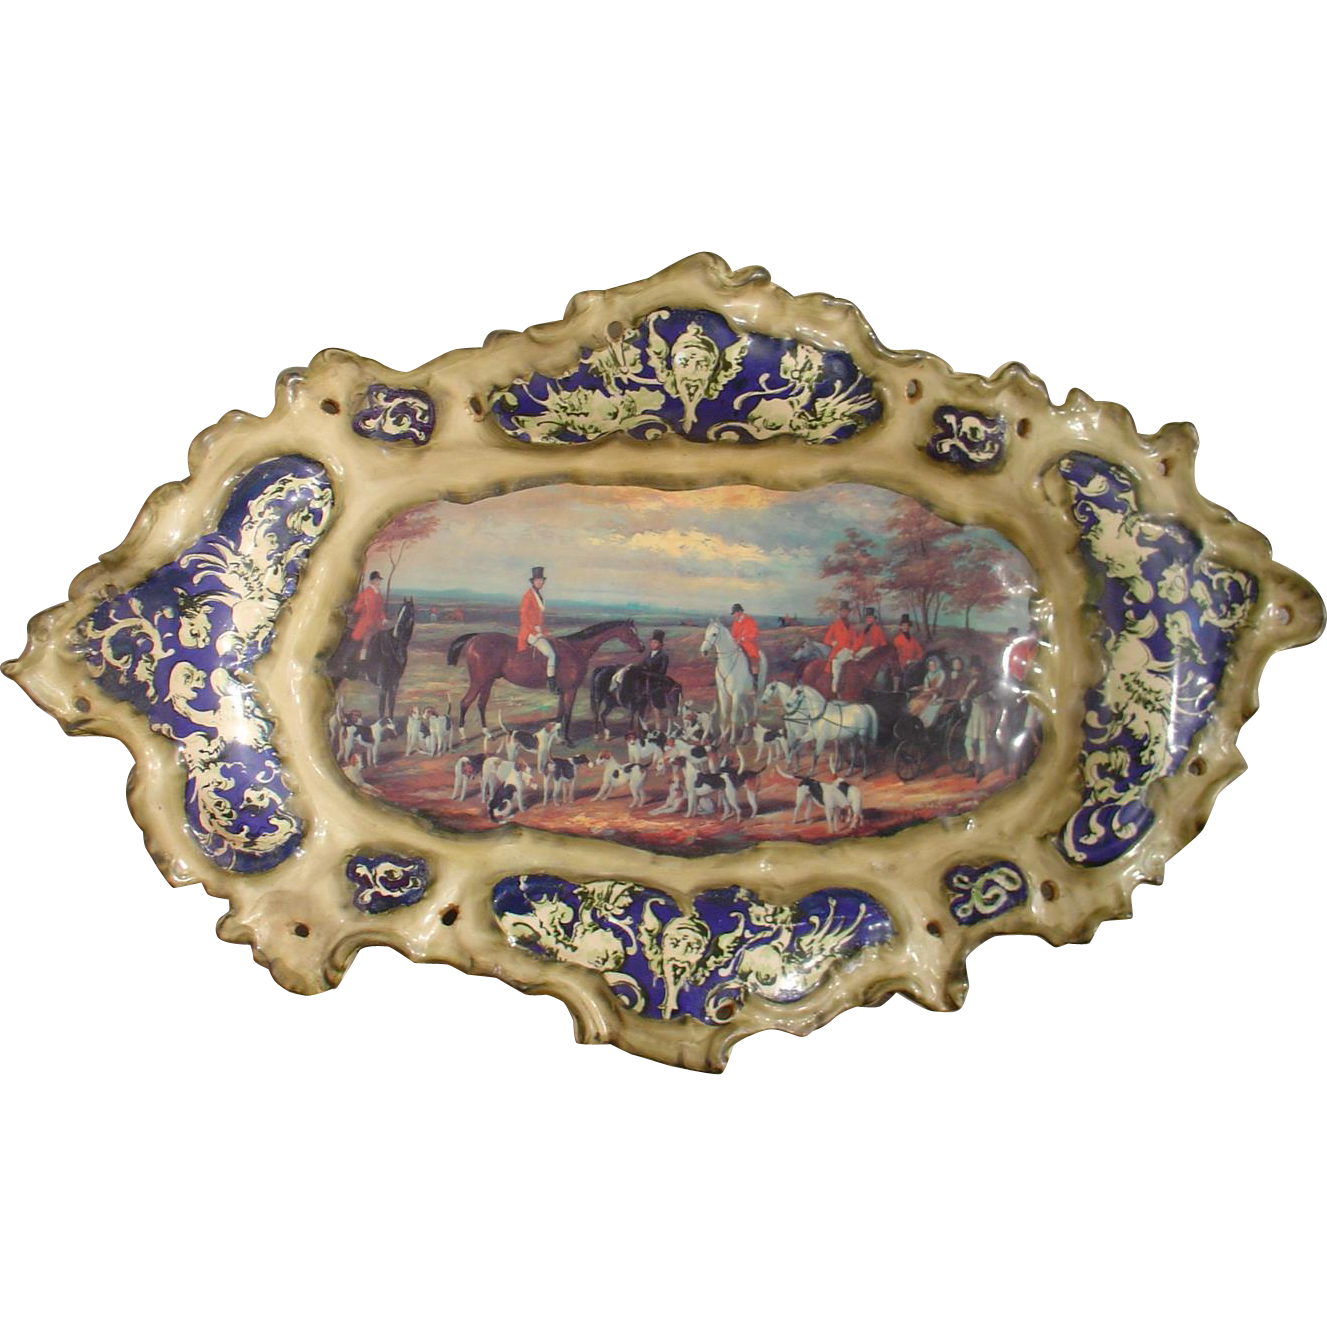 Hand Painted French Platter Depicting an English Hunt Scene, 1900s